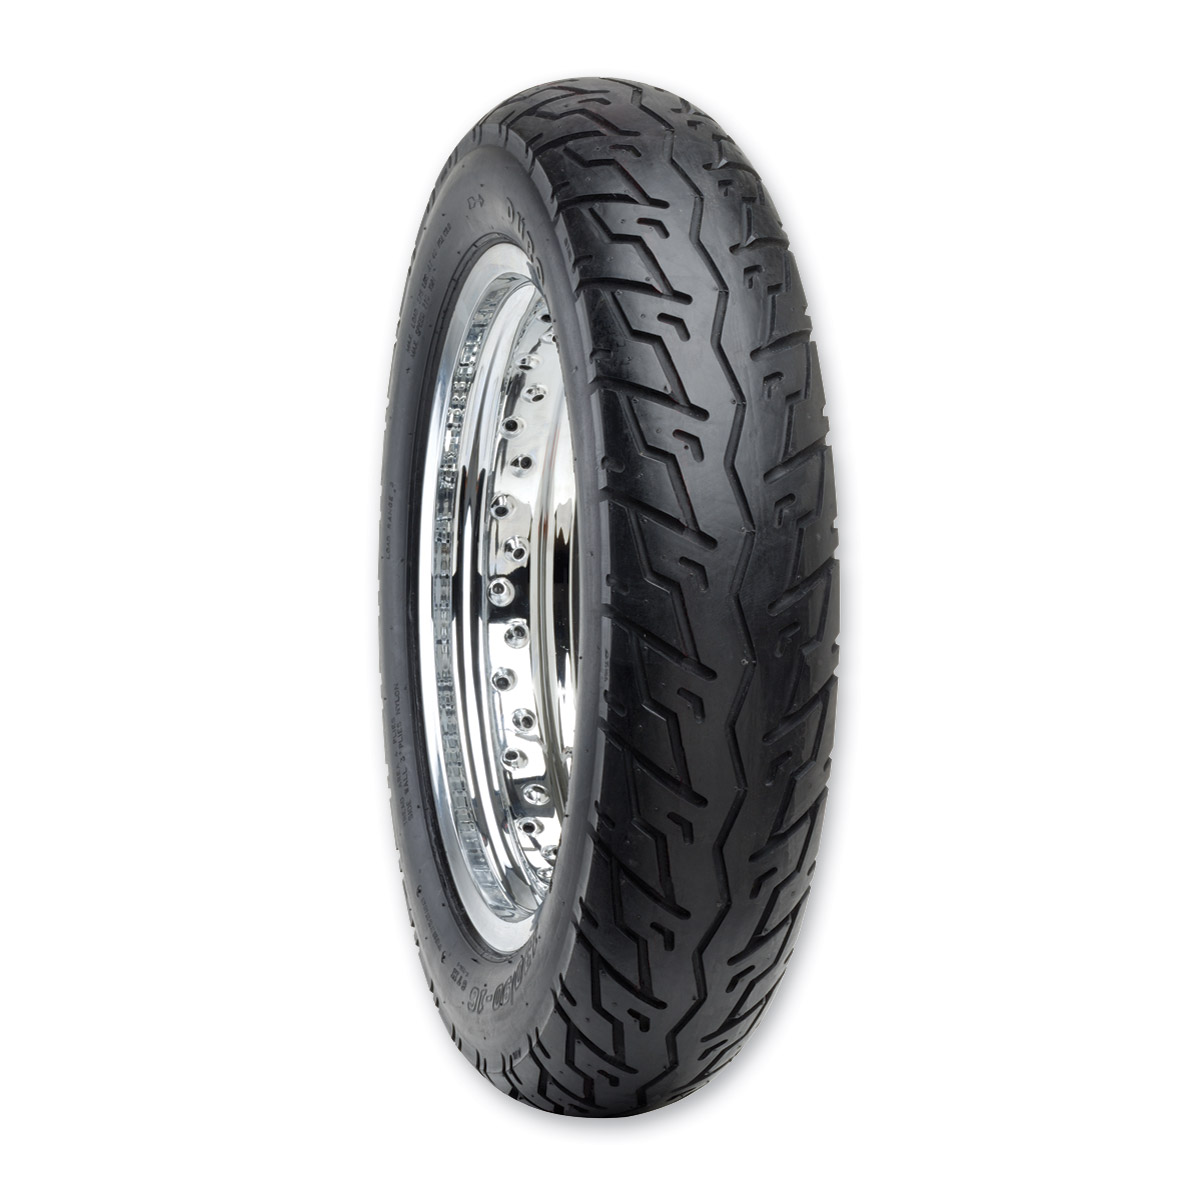 Duro HF261A Excursion 120/90-16 Front/Rear Tire